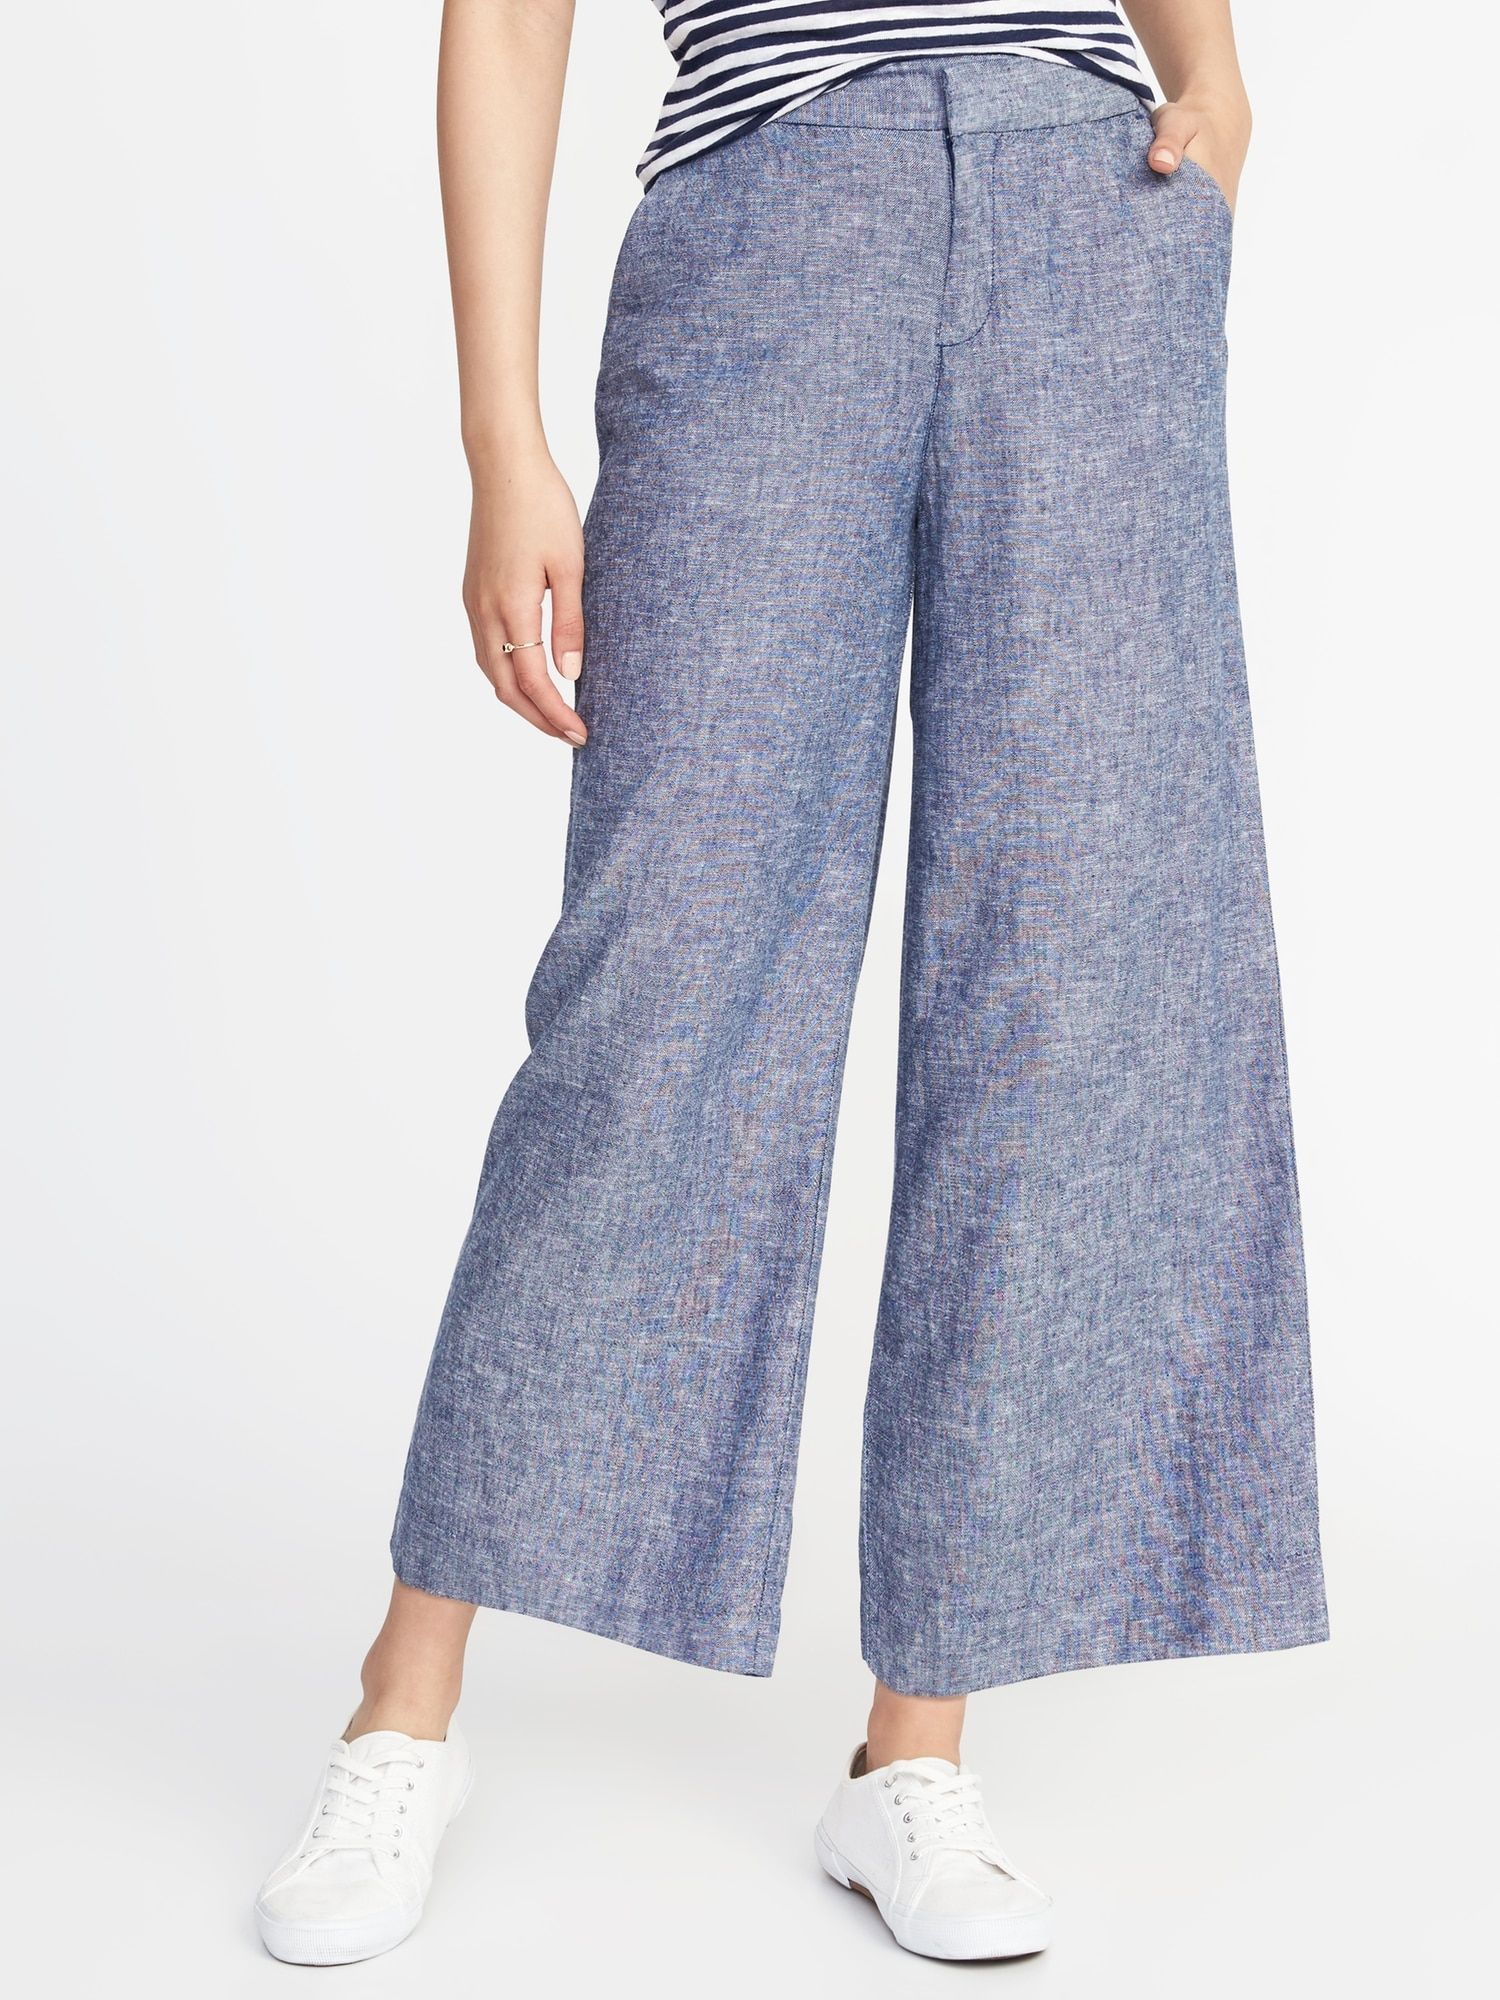 3b5f1a4493 High-Rise Linen-Blend Wide-Leg Cropped Pants for Women |old-navy ...